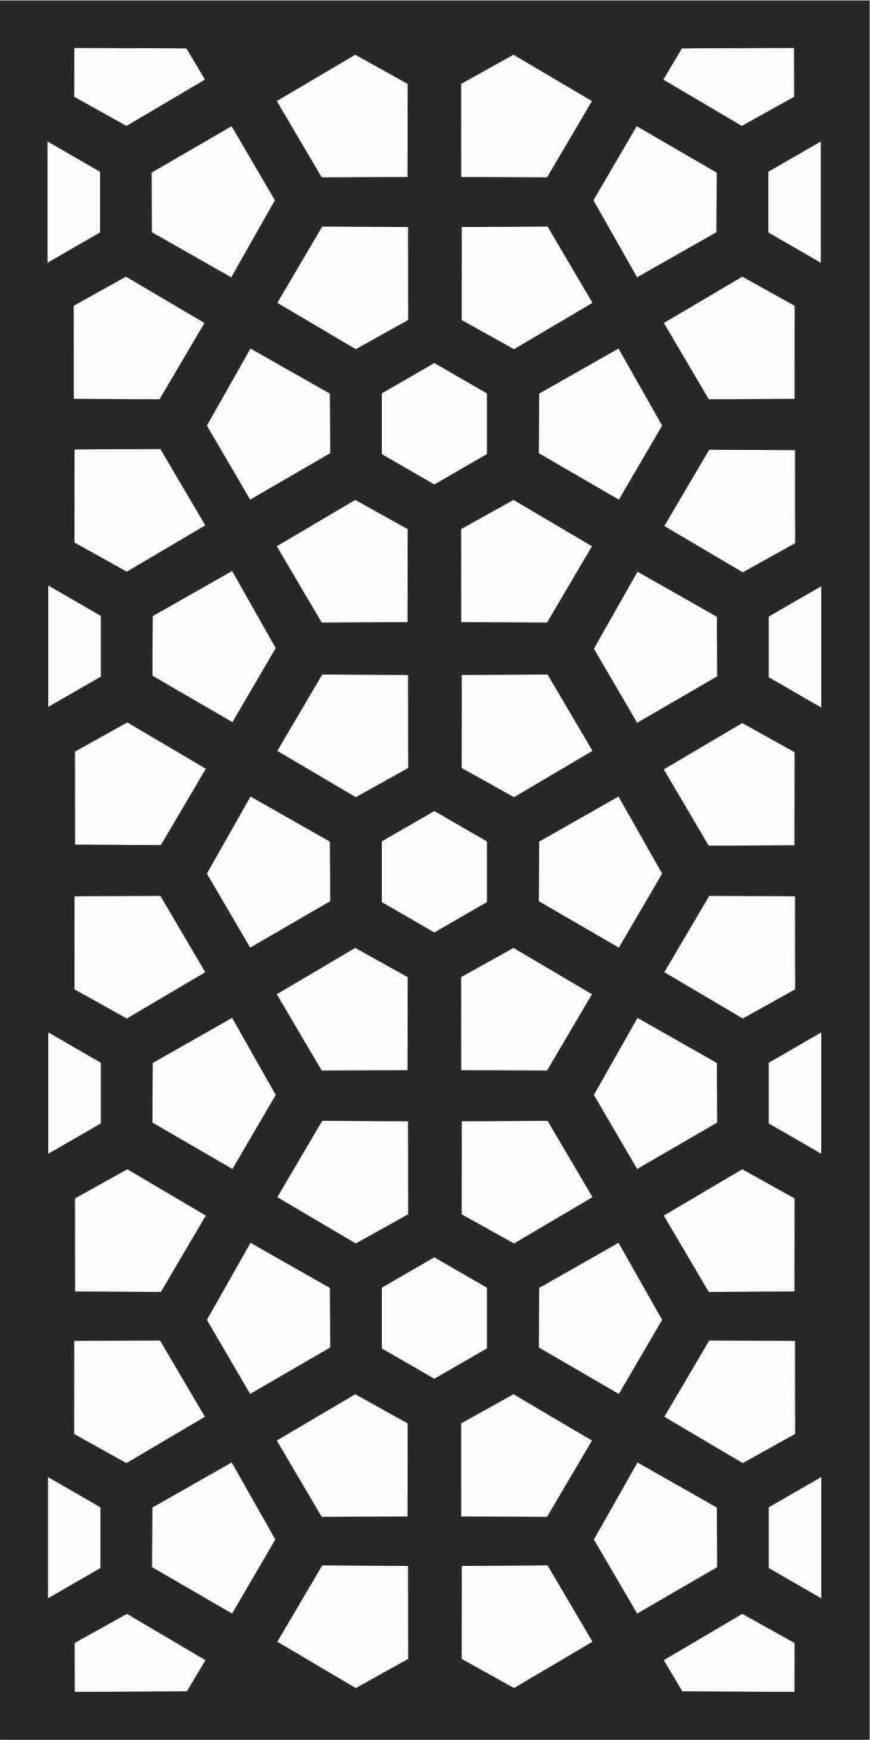 Decorative Screen Patterns For Laser Cutting 177 Free DXF File